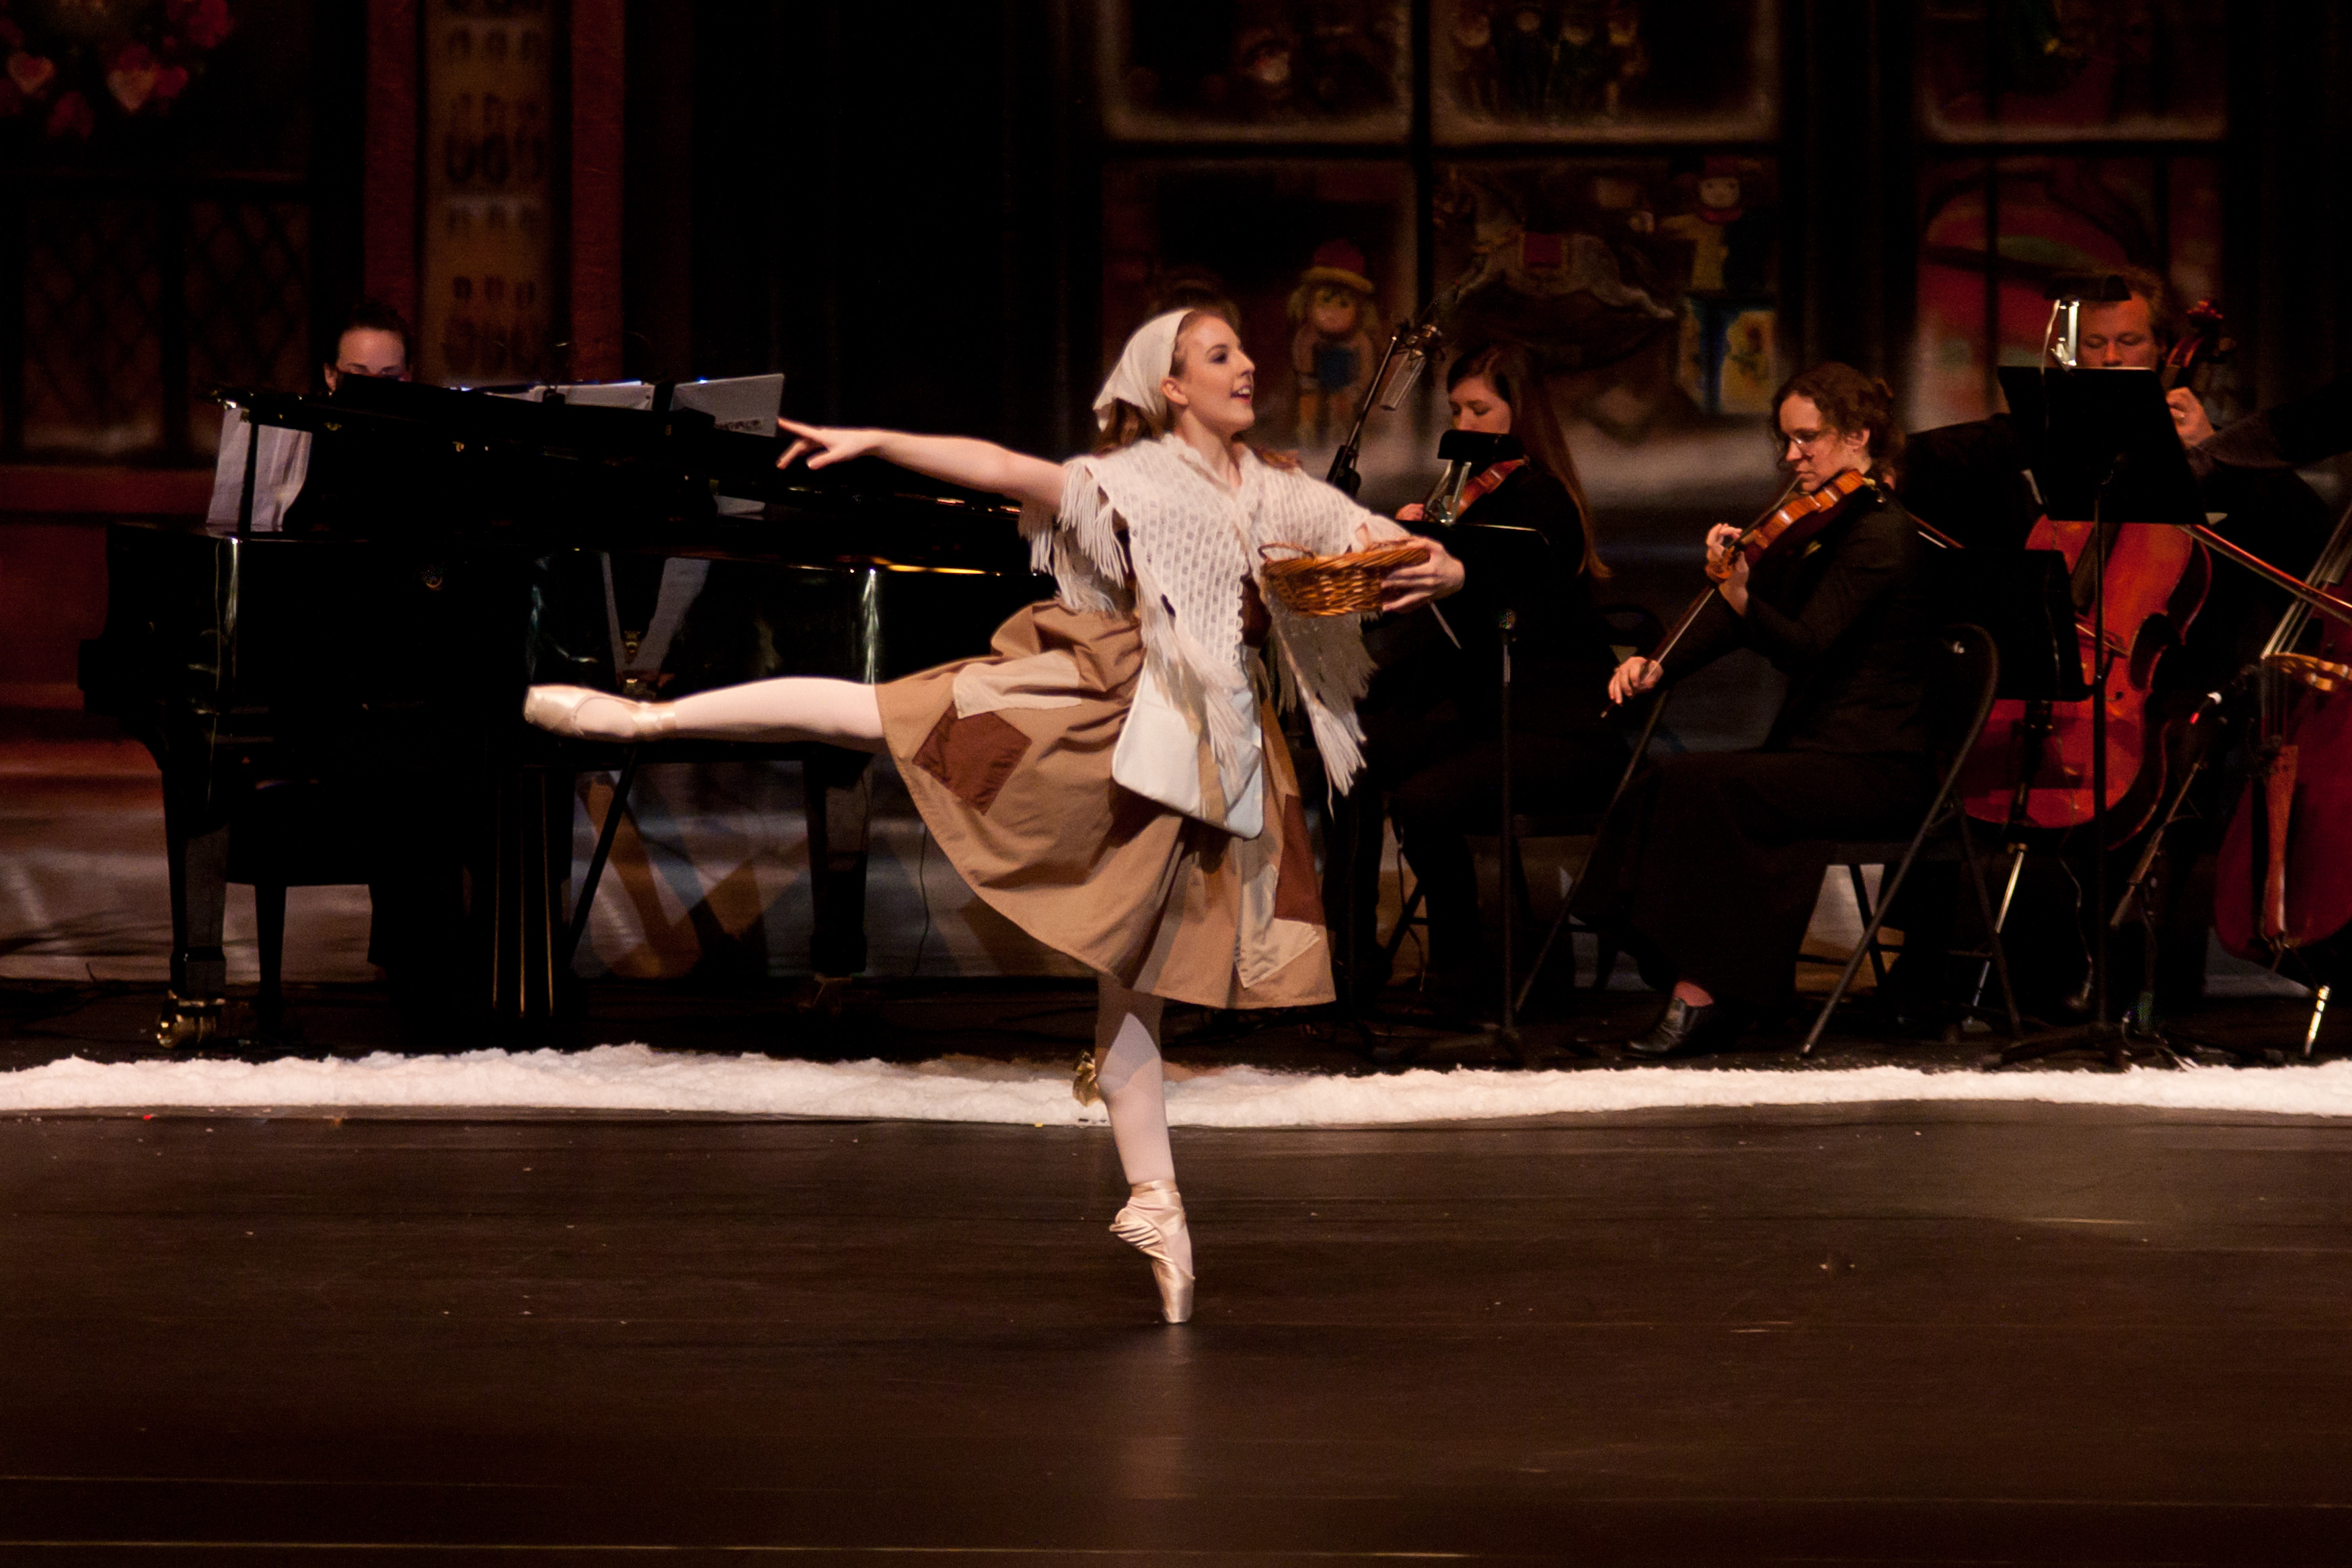 The Little Match Girl is an original ballet with a live chamber orchestra.